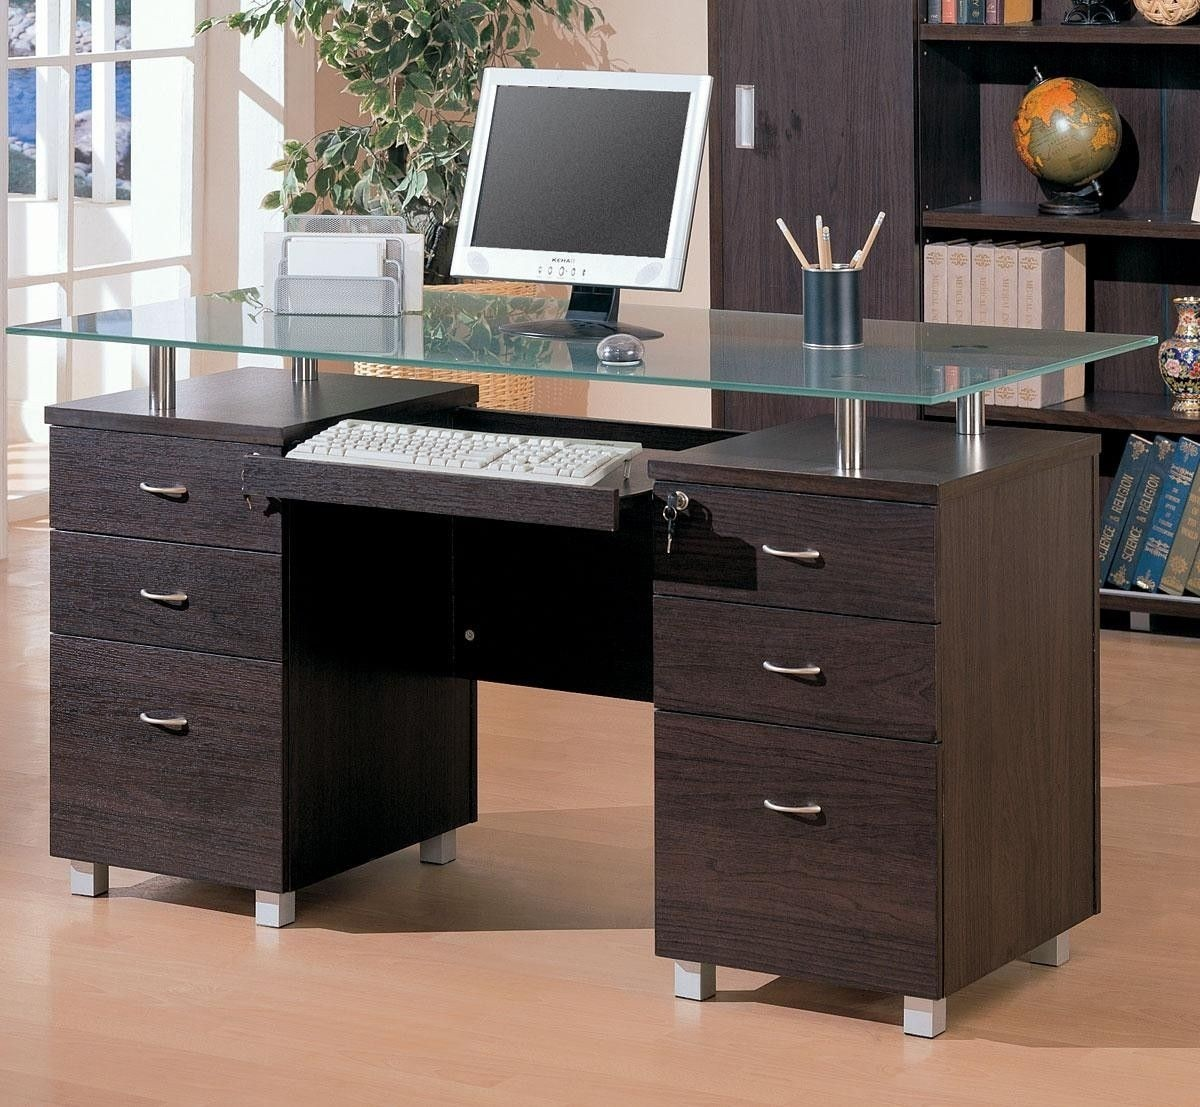 Etonnant Computer Desk With Locking Drawers   Ideas On Foter